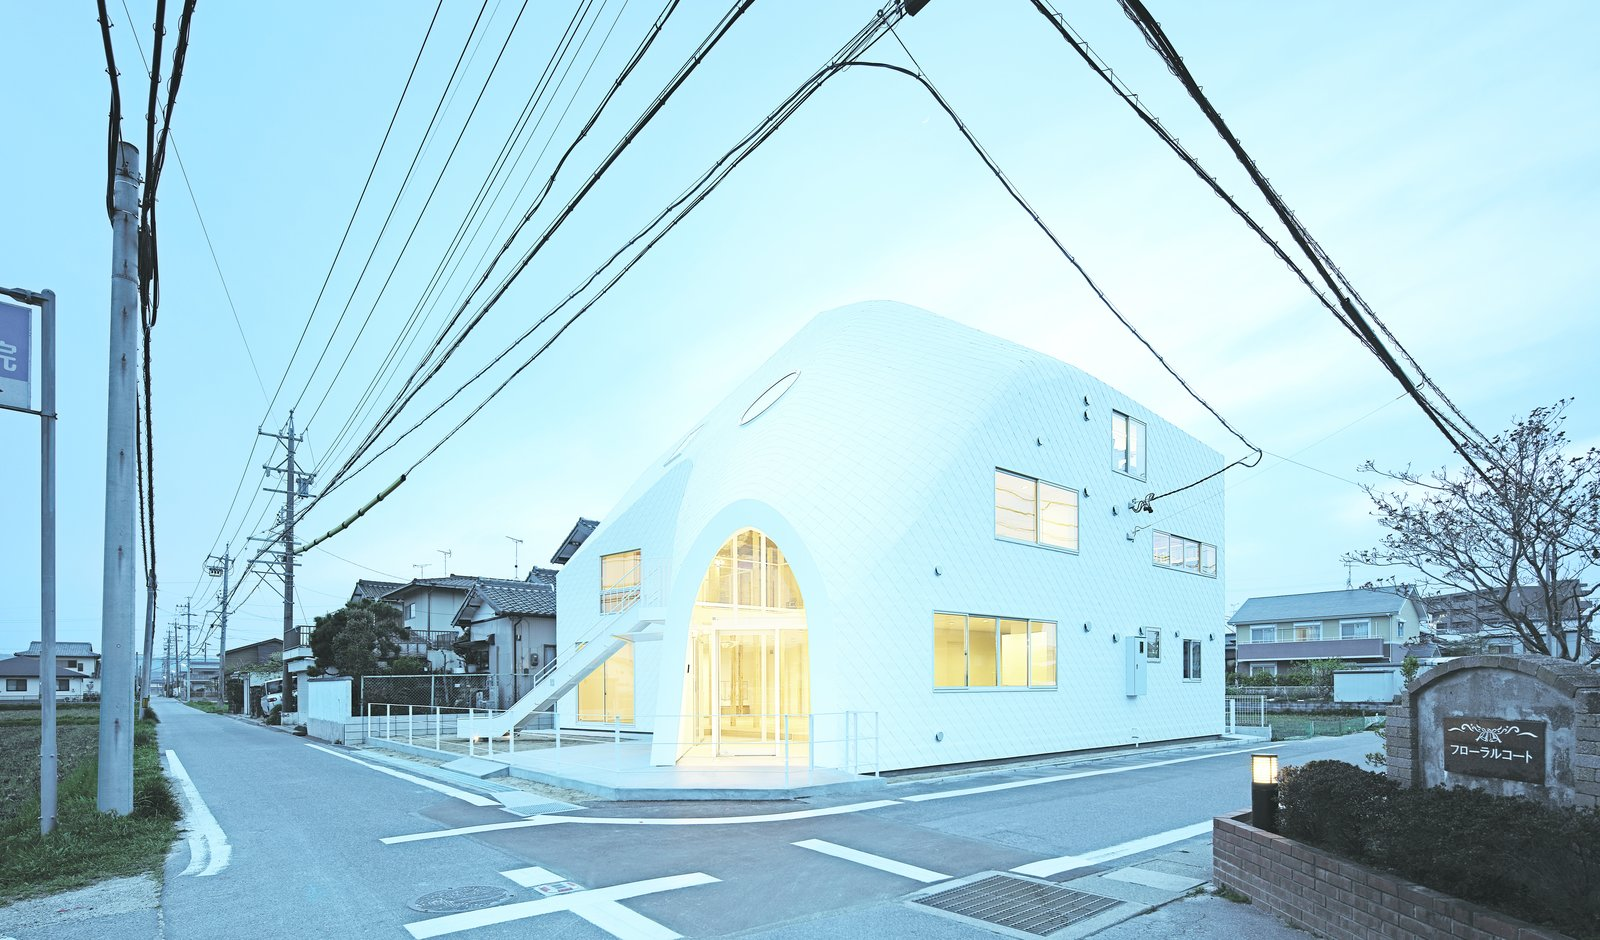 A kindergarten Okazaki, Japan, Clover House is named for its previous life. Originally a 1,100-square-foot residence in a traditional Japanese style, the structure was transformed by MAD Architects in a sculptural example of adaptive reuse wrapped in asphalt shingles. The windows were oriented to bring sunlight and shadow into the space in dynamic ways.  Picture by Koji Fuji